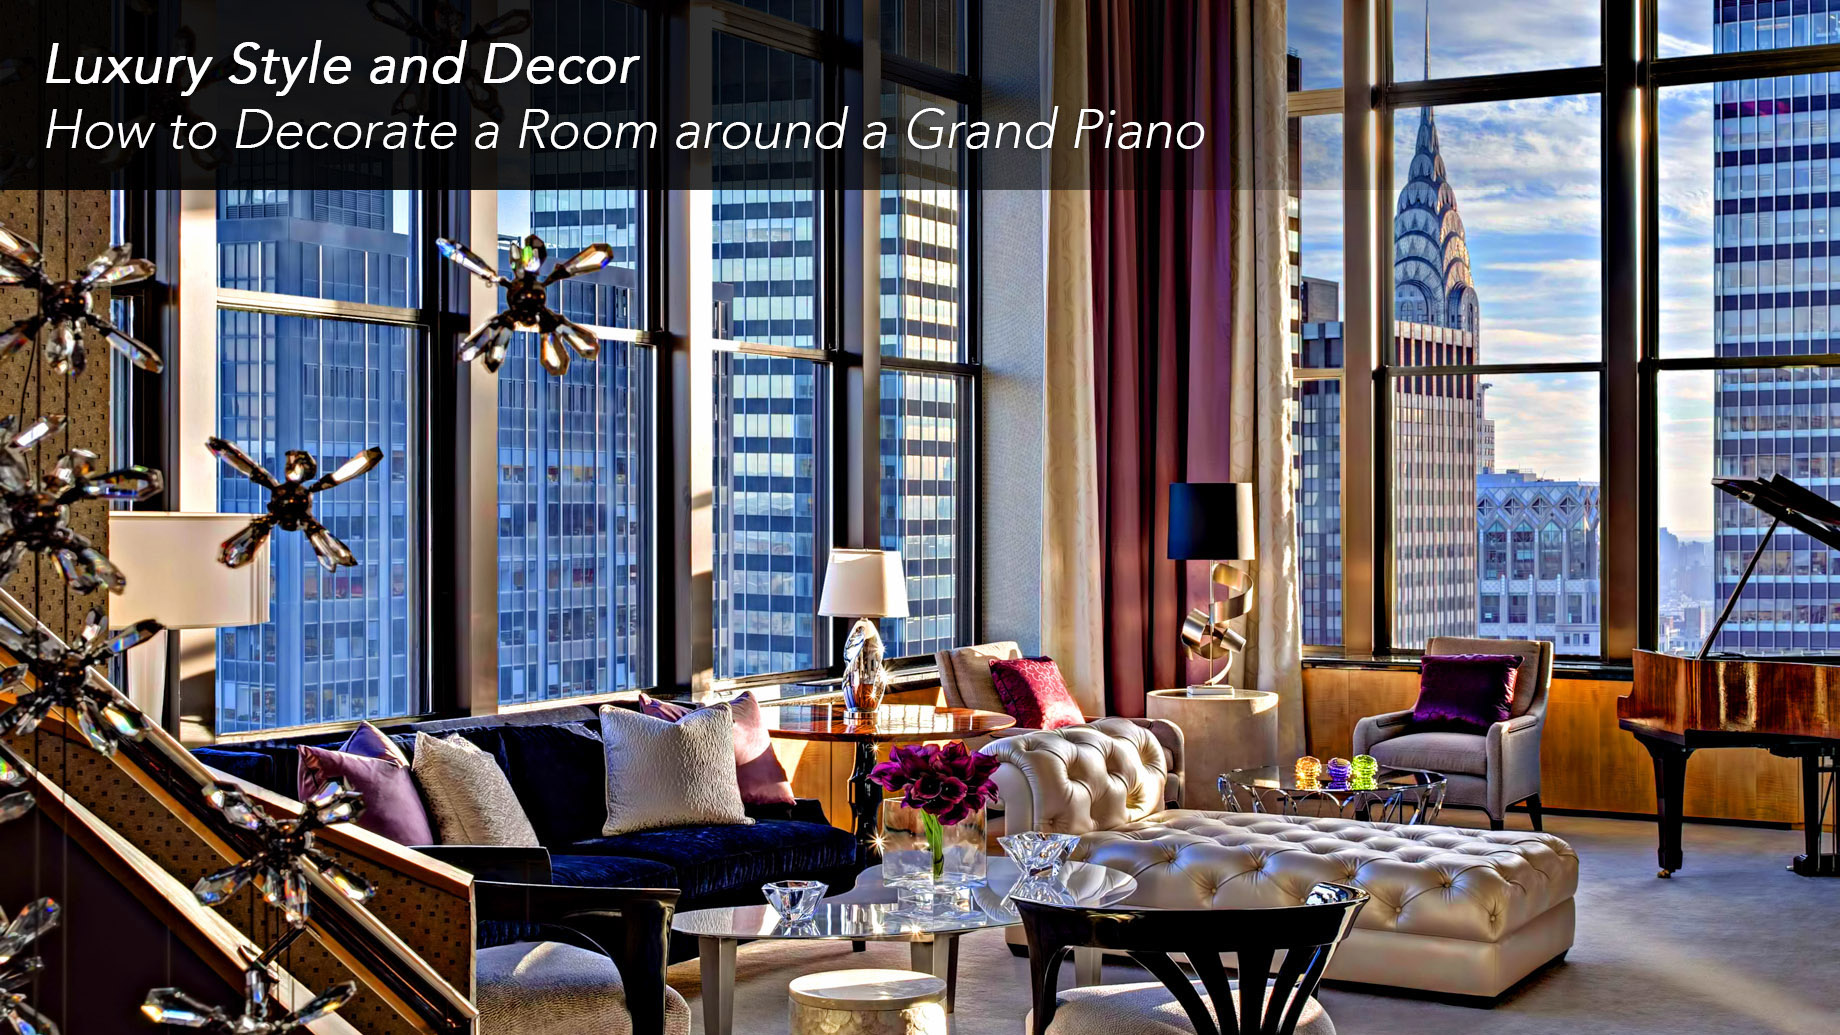 Luxury Style And Decor How To Decorate A Room Around A Grand Piano The Pinnacle List